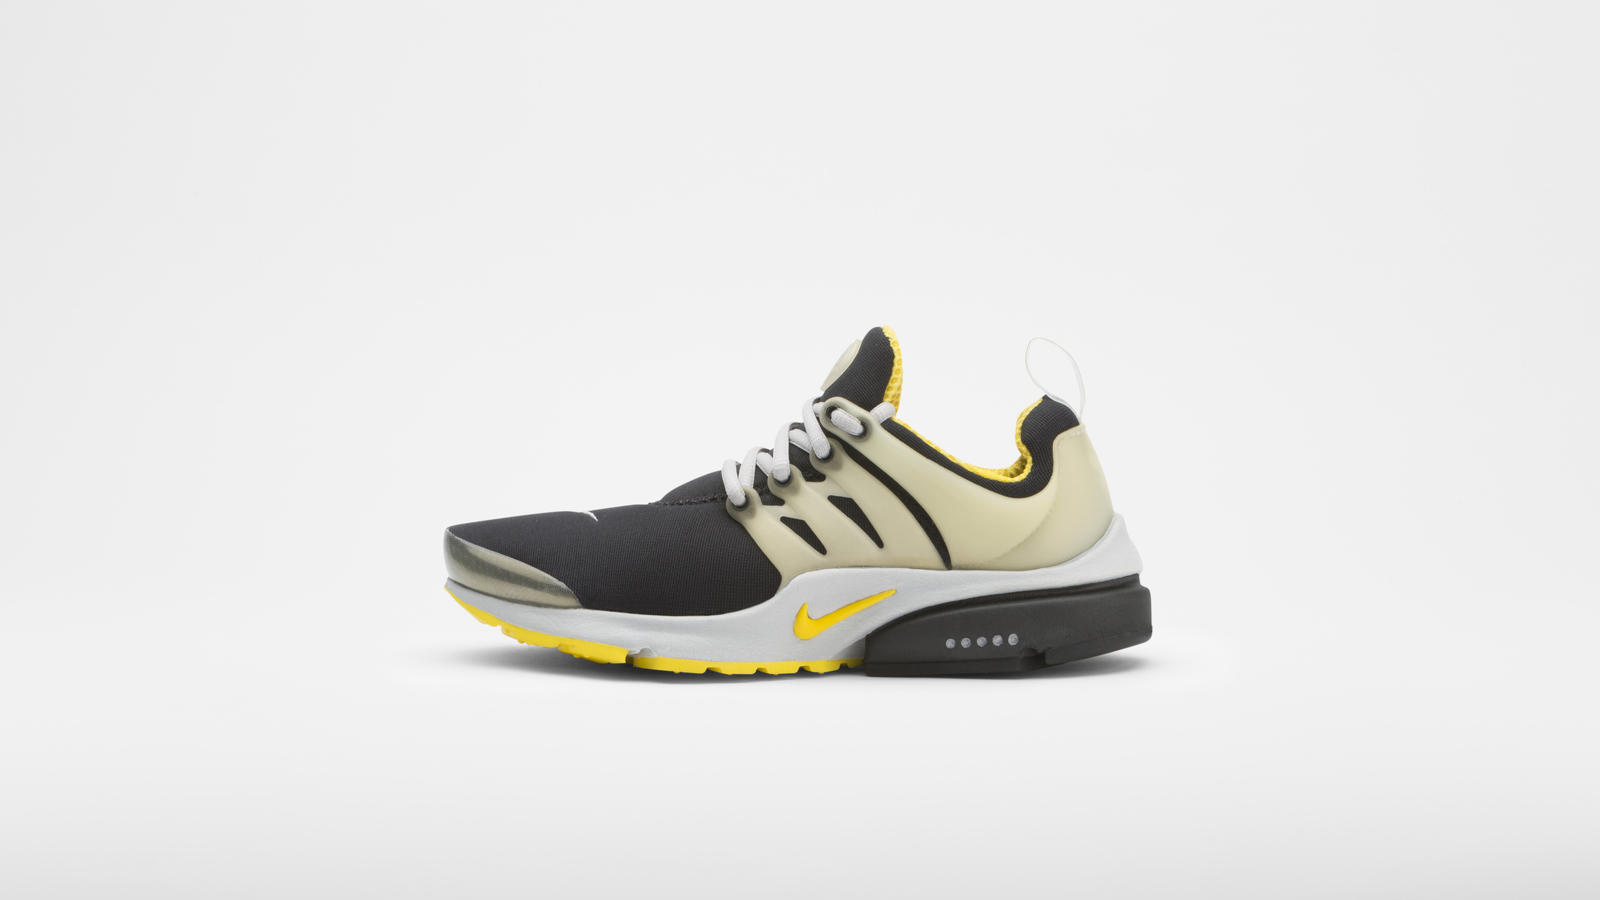 b659af8f03eaf The Magic Behind the Nike Air Presto - Nike News